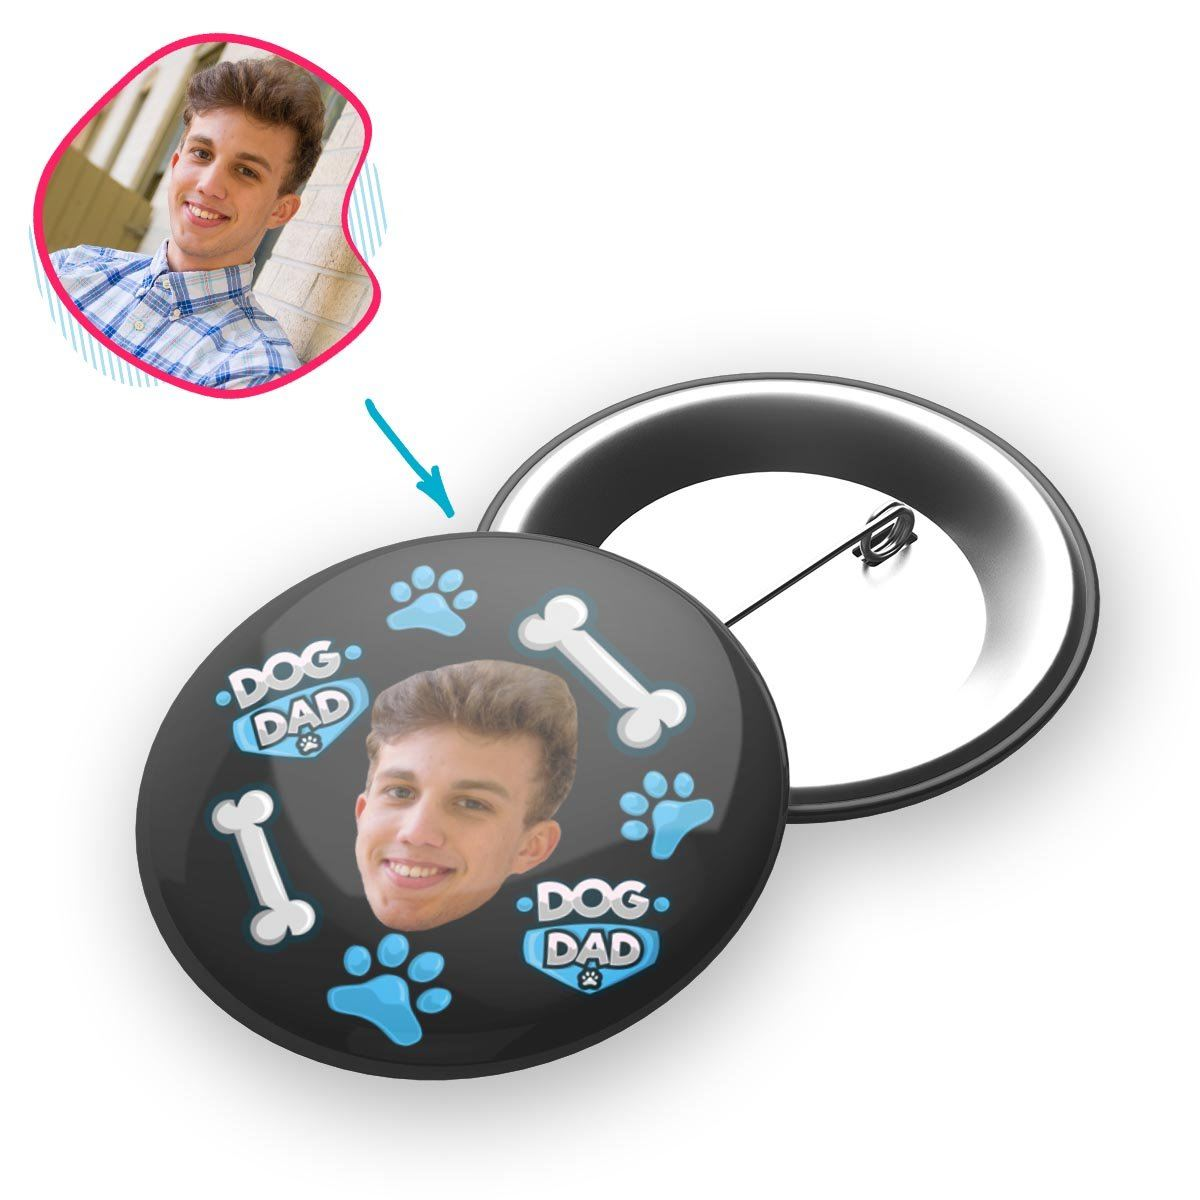 dark Dog Dad pin personalized with photo of face printed on it